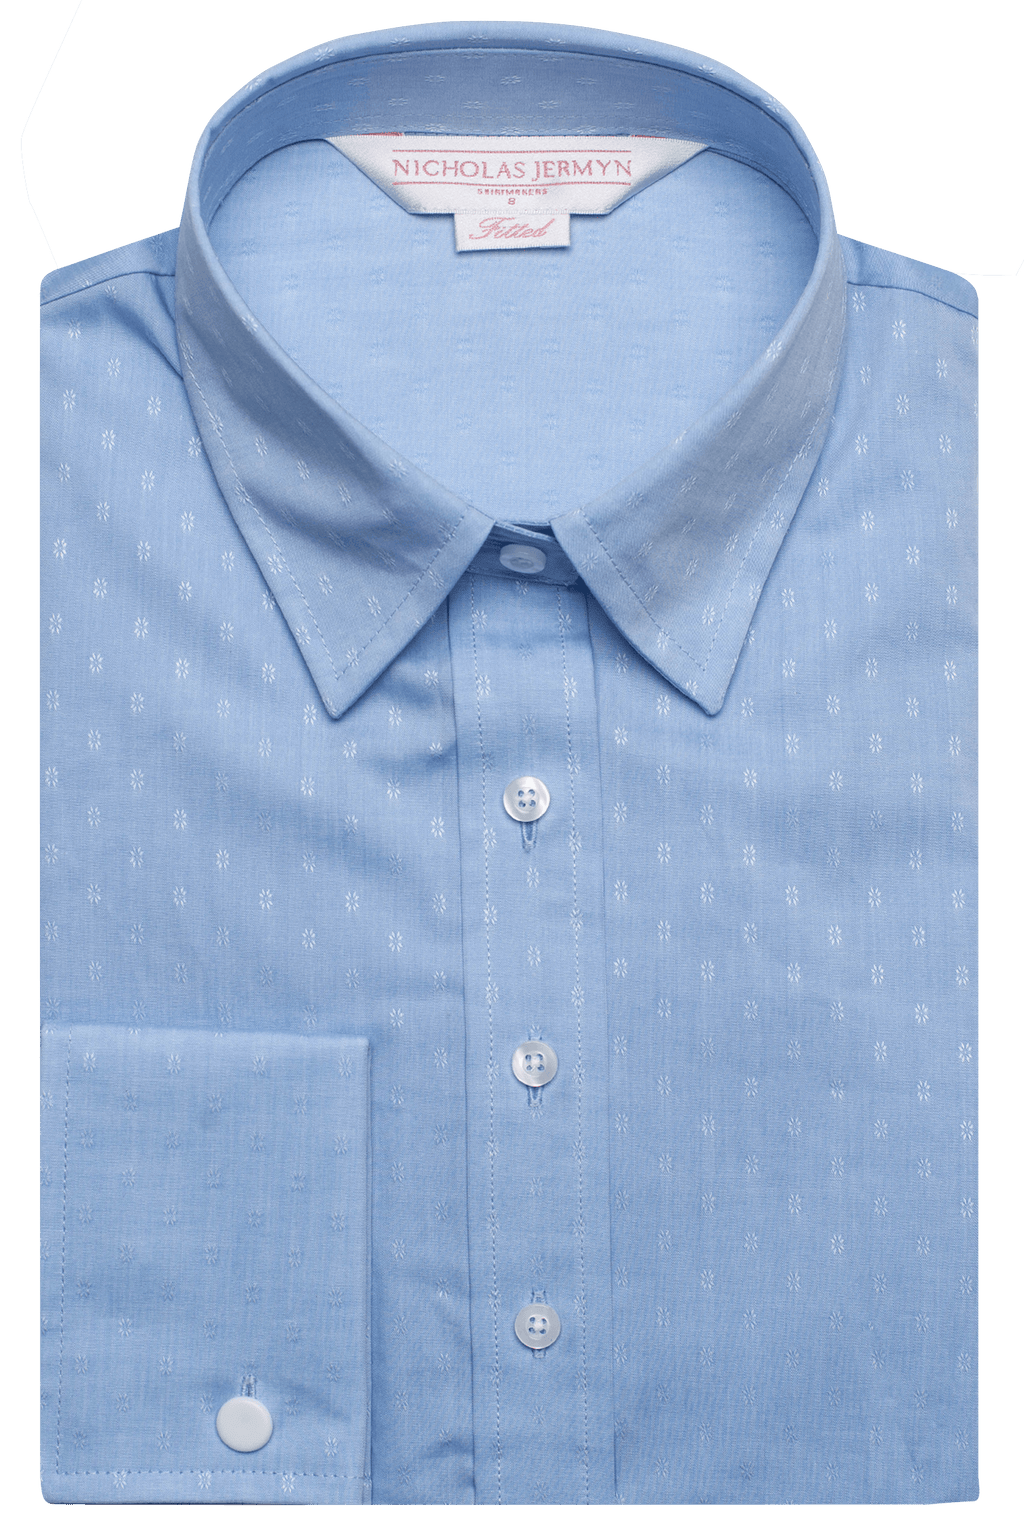 Self Print Shirt - Blue